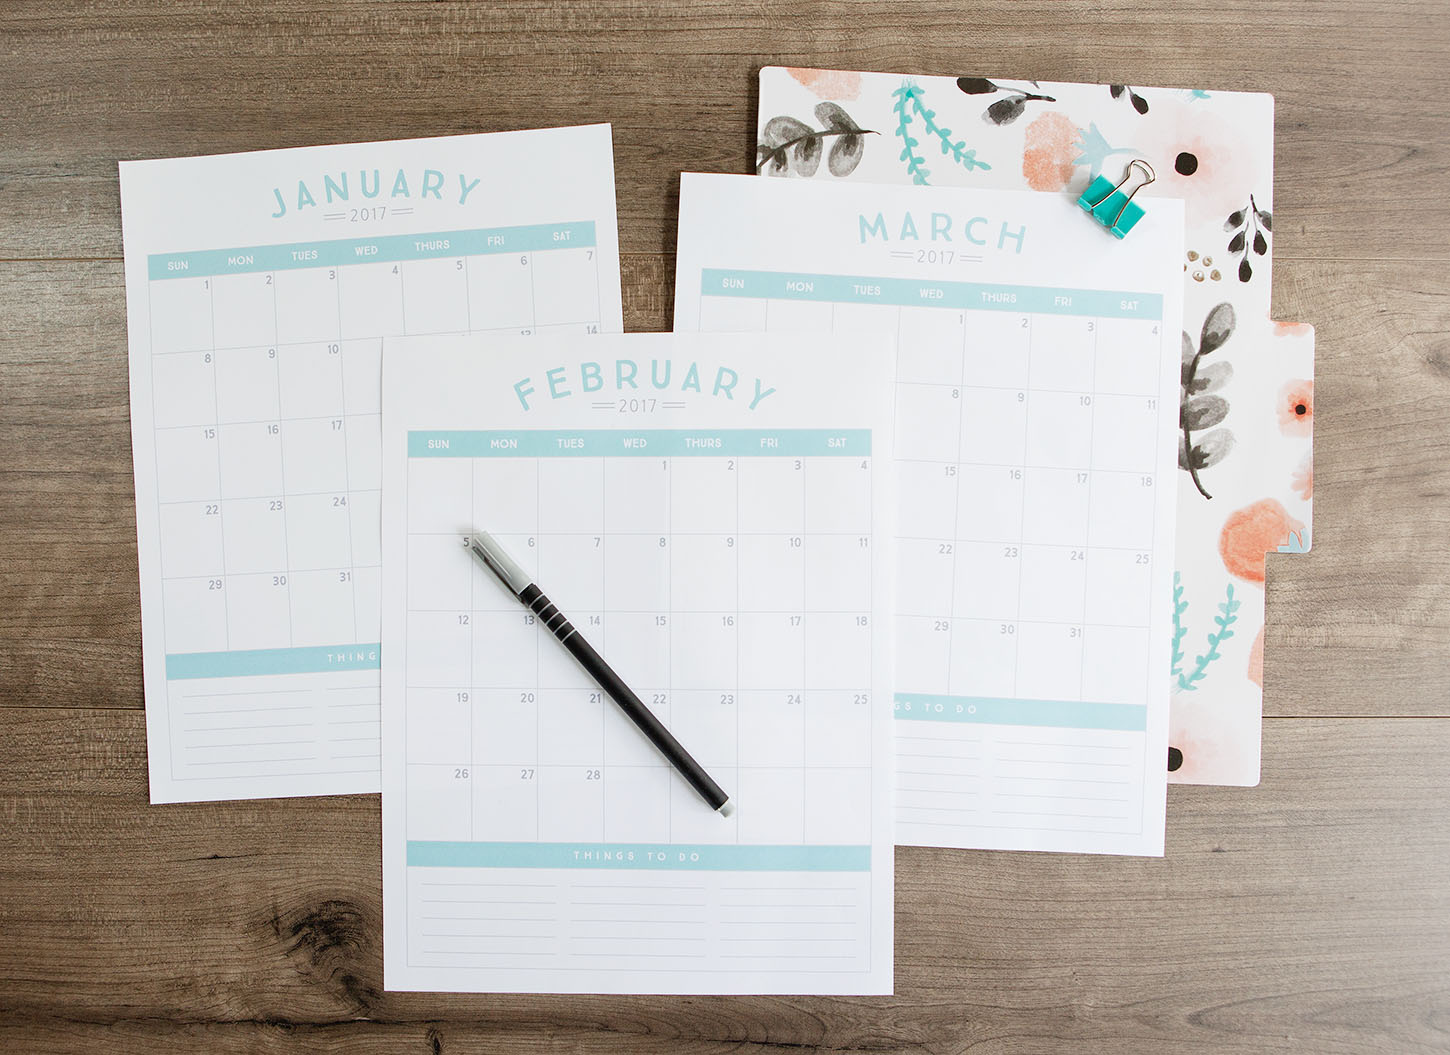 Calendar Planner Tool : Free printable calendar simple as that